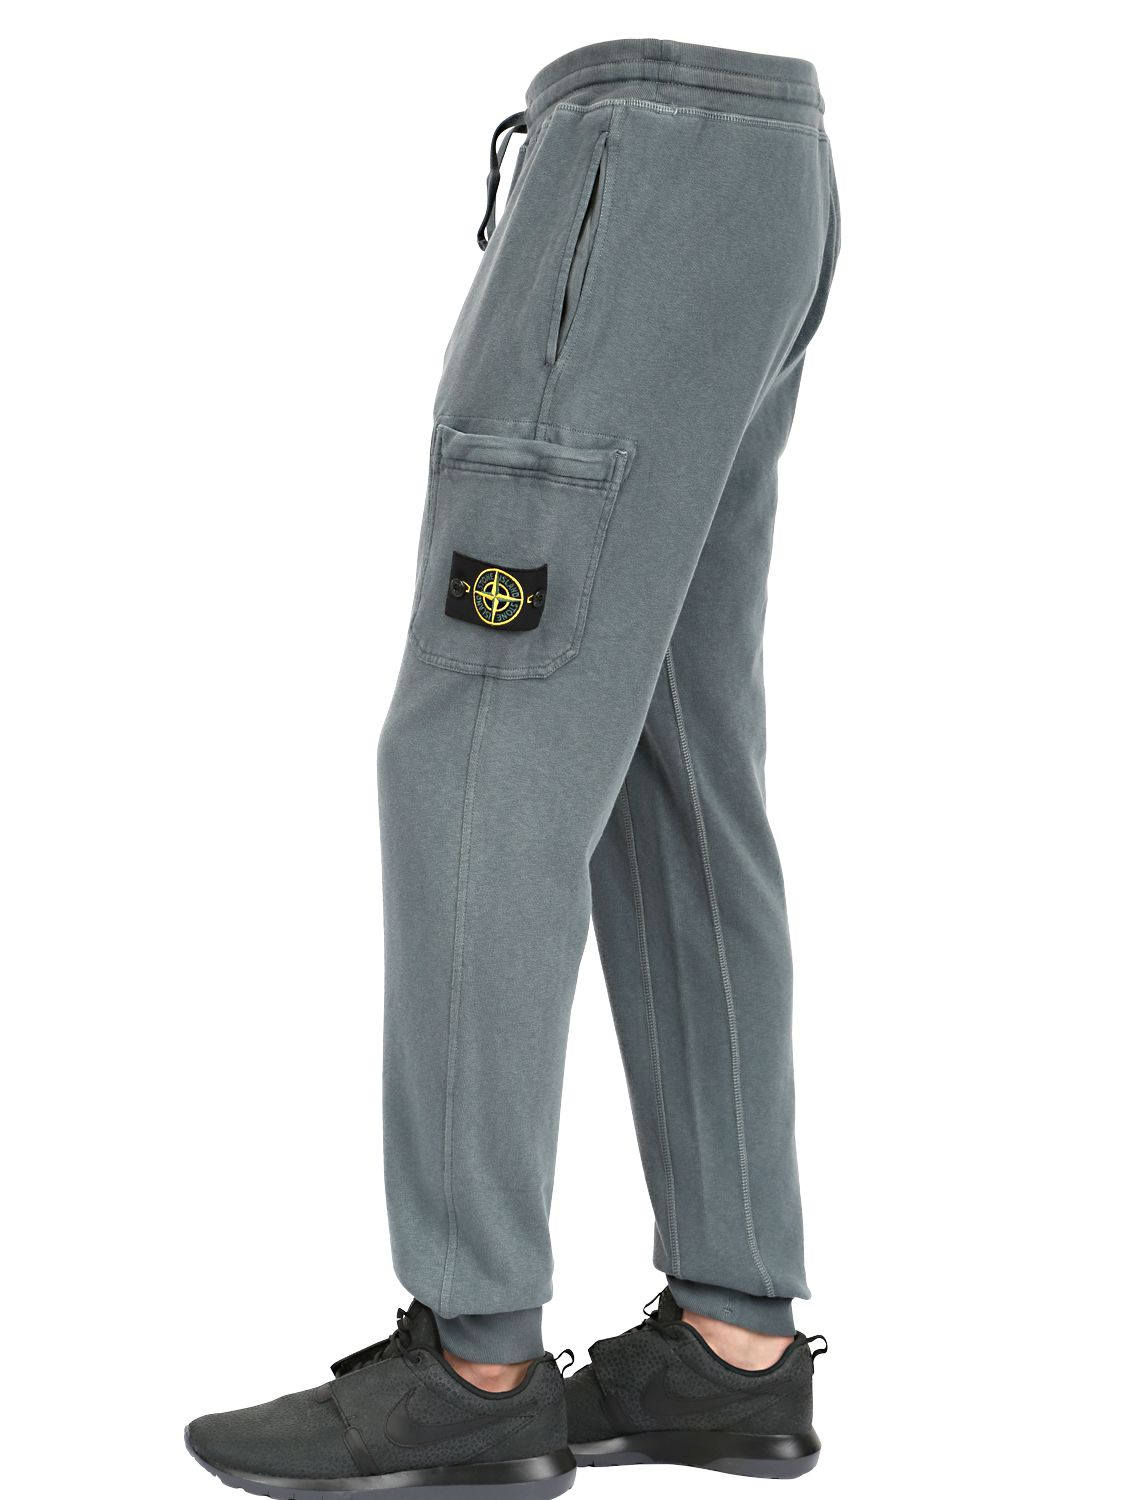 Lyst Stone Island Garment Dyed Cotton Jogging Pants In